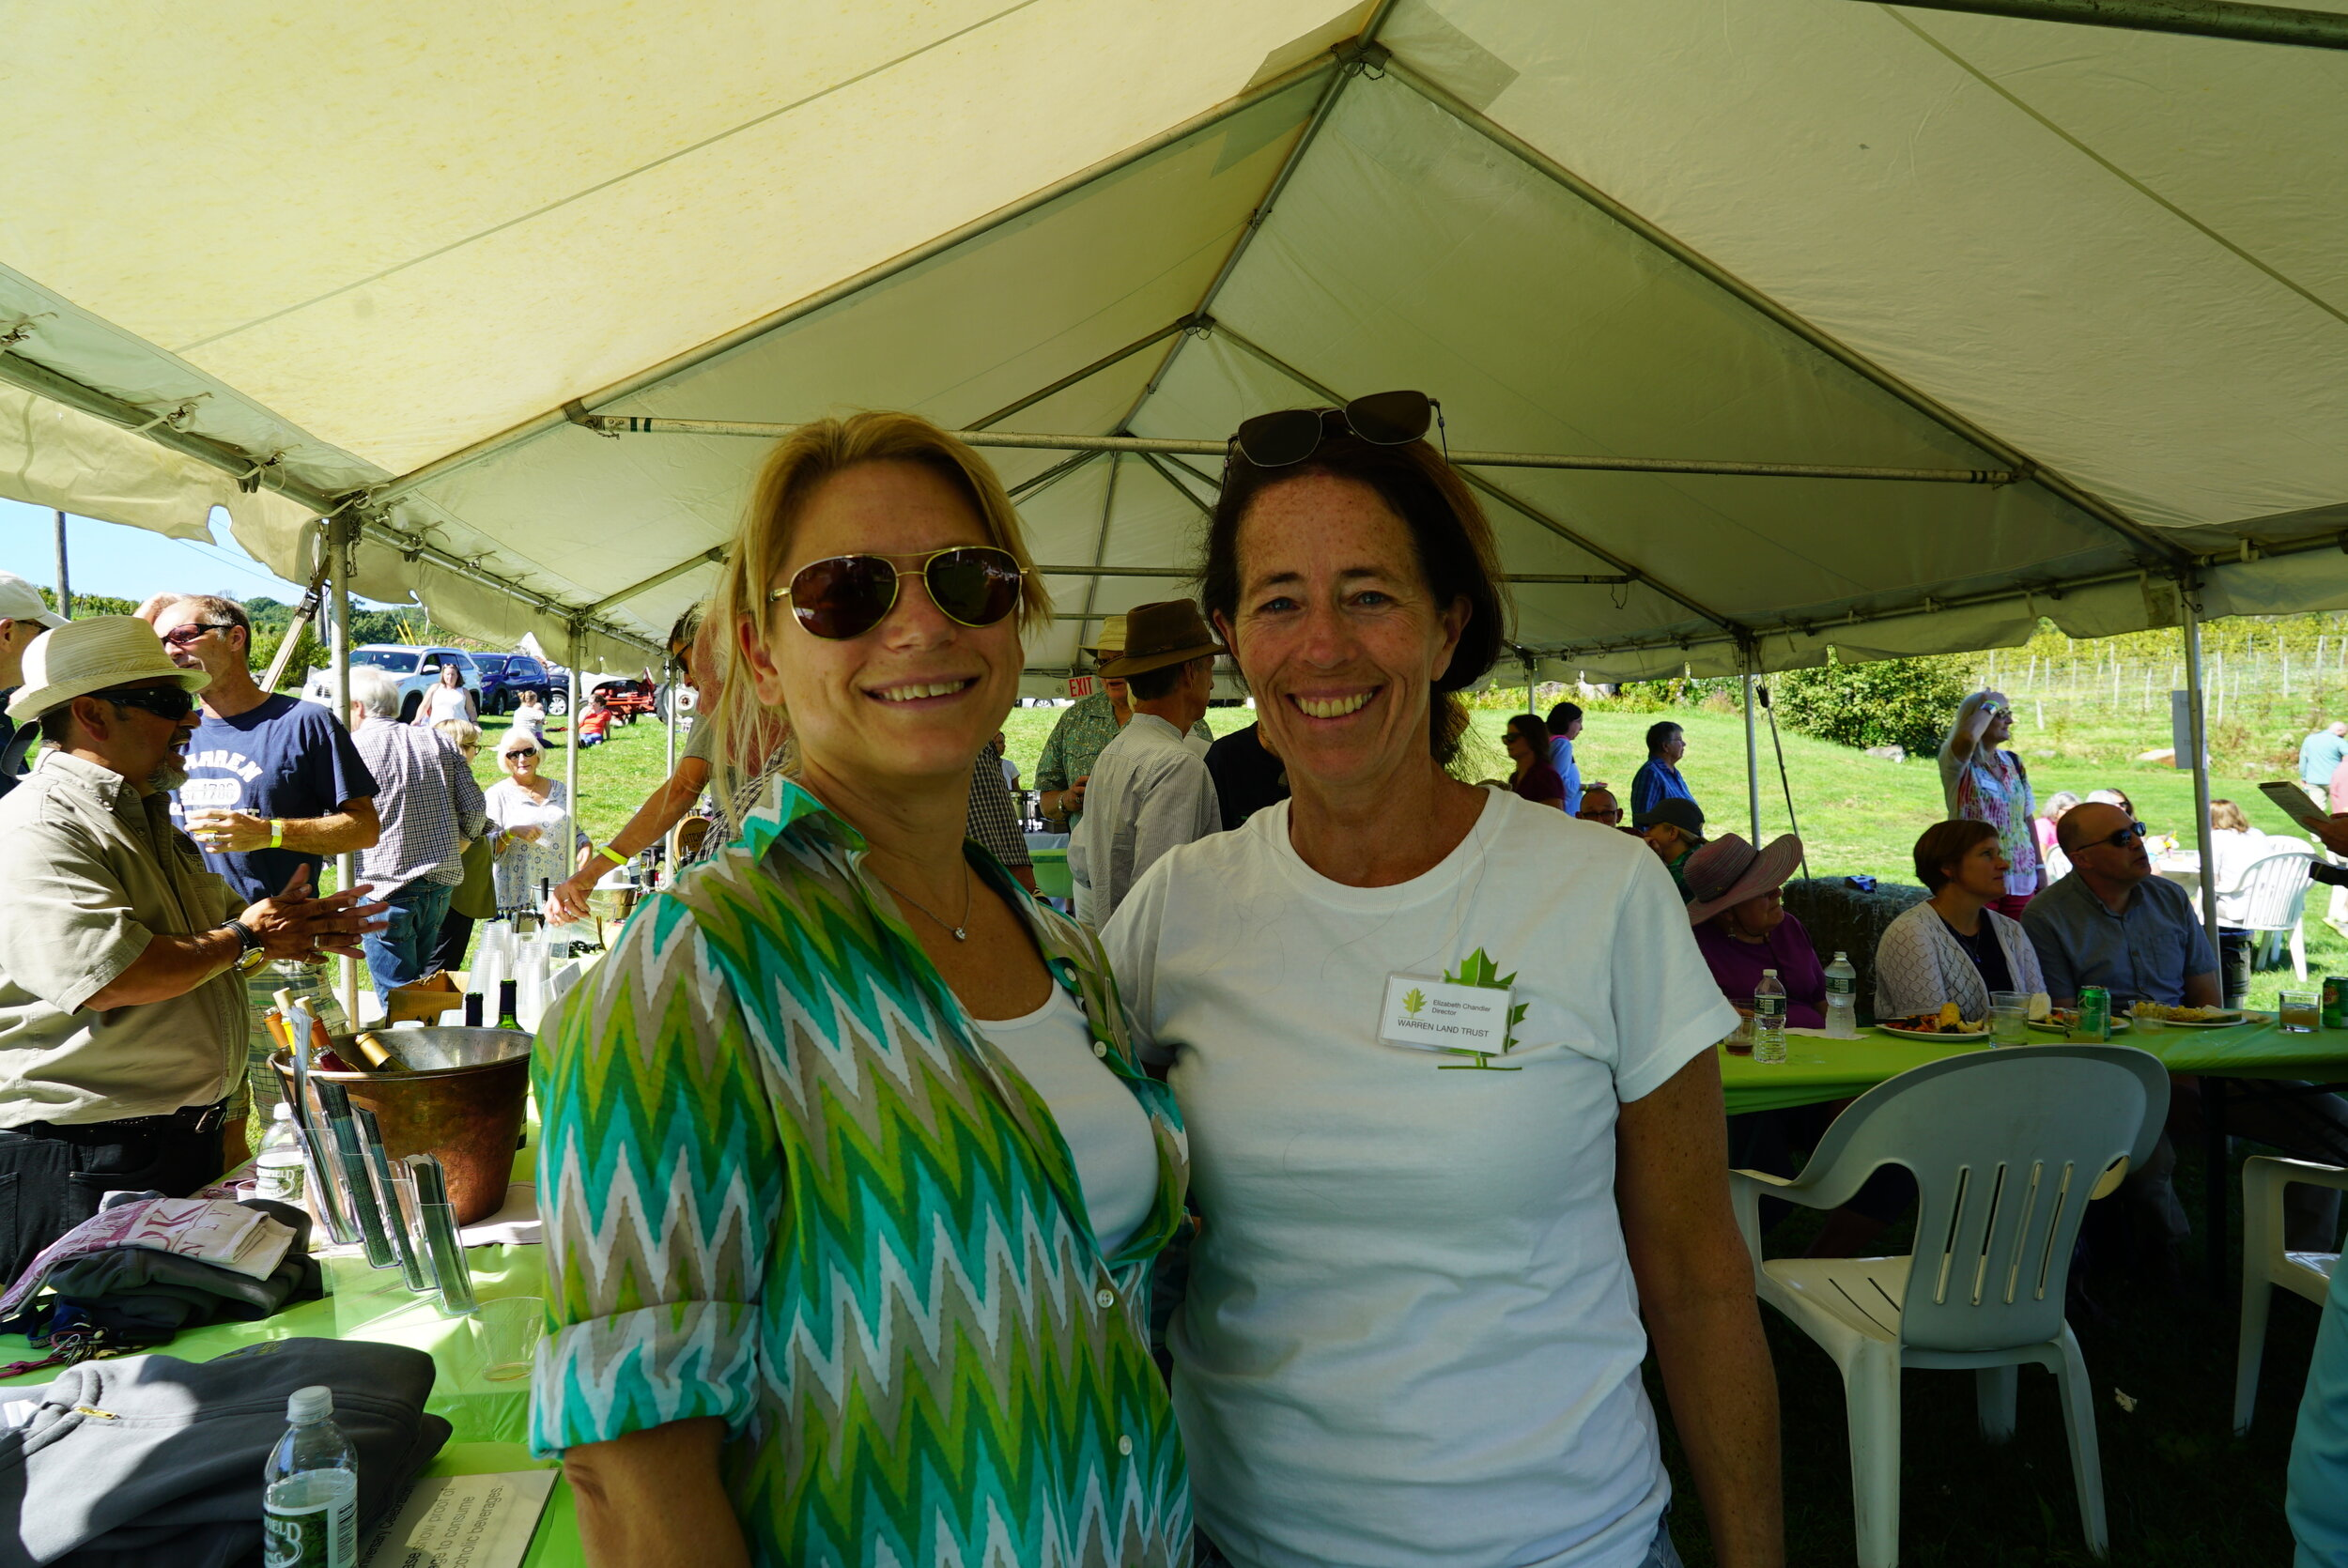 Rebecca Neary and Elizabeth Chandler are sporting WLT's colors, greens and white.JPG